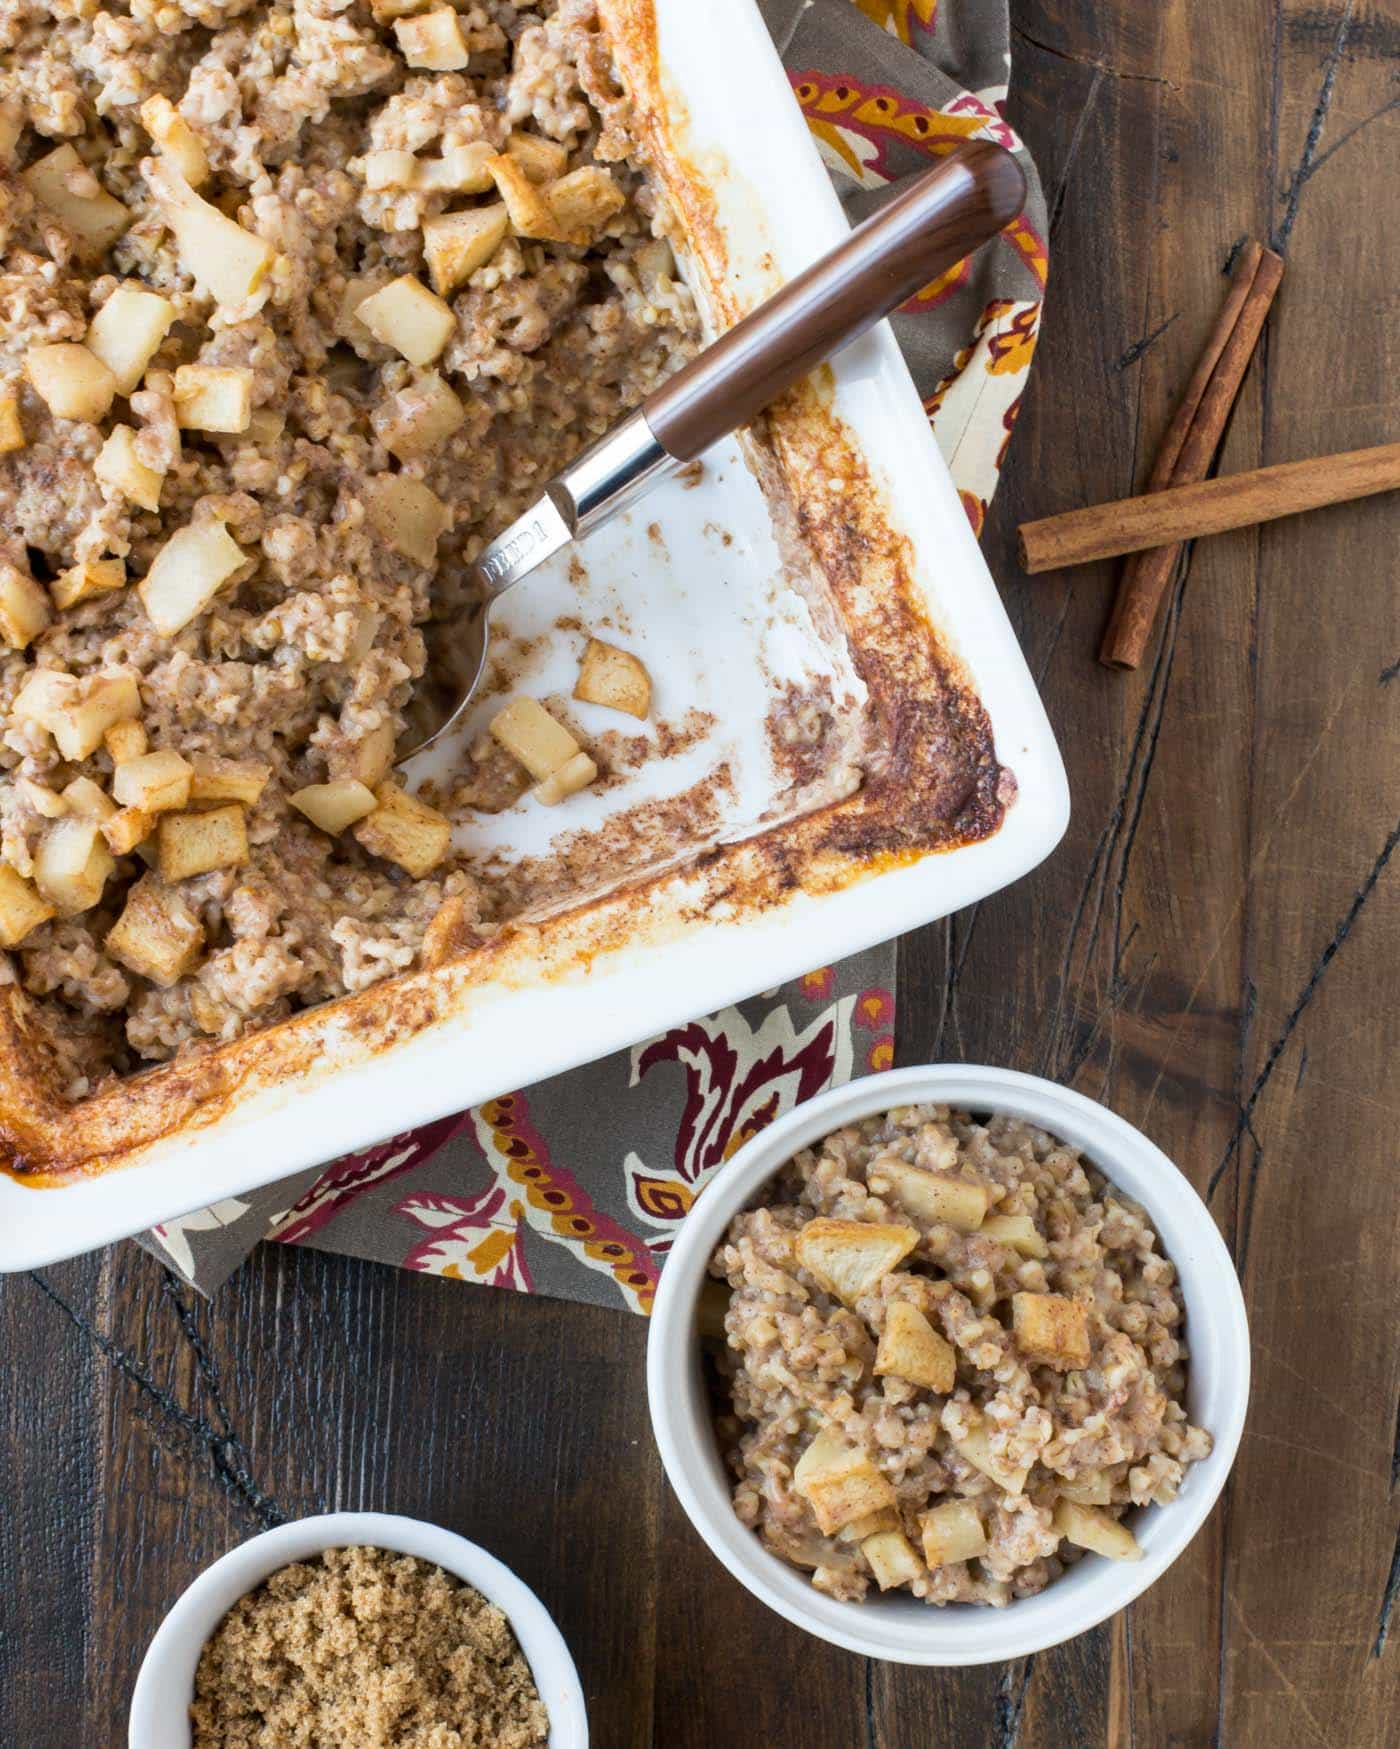 Top down image of white pan filled with baked oatmeal and a brown spoon for serving with a cinnamon stick for garnish.